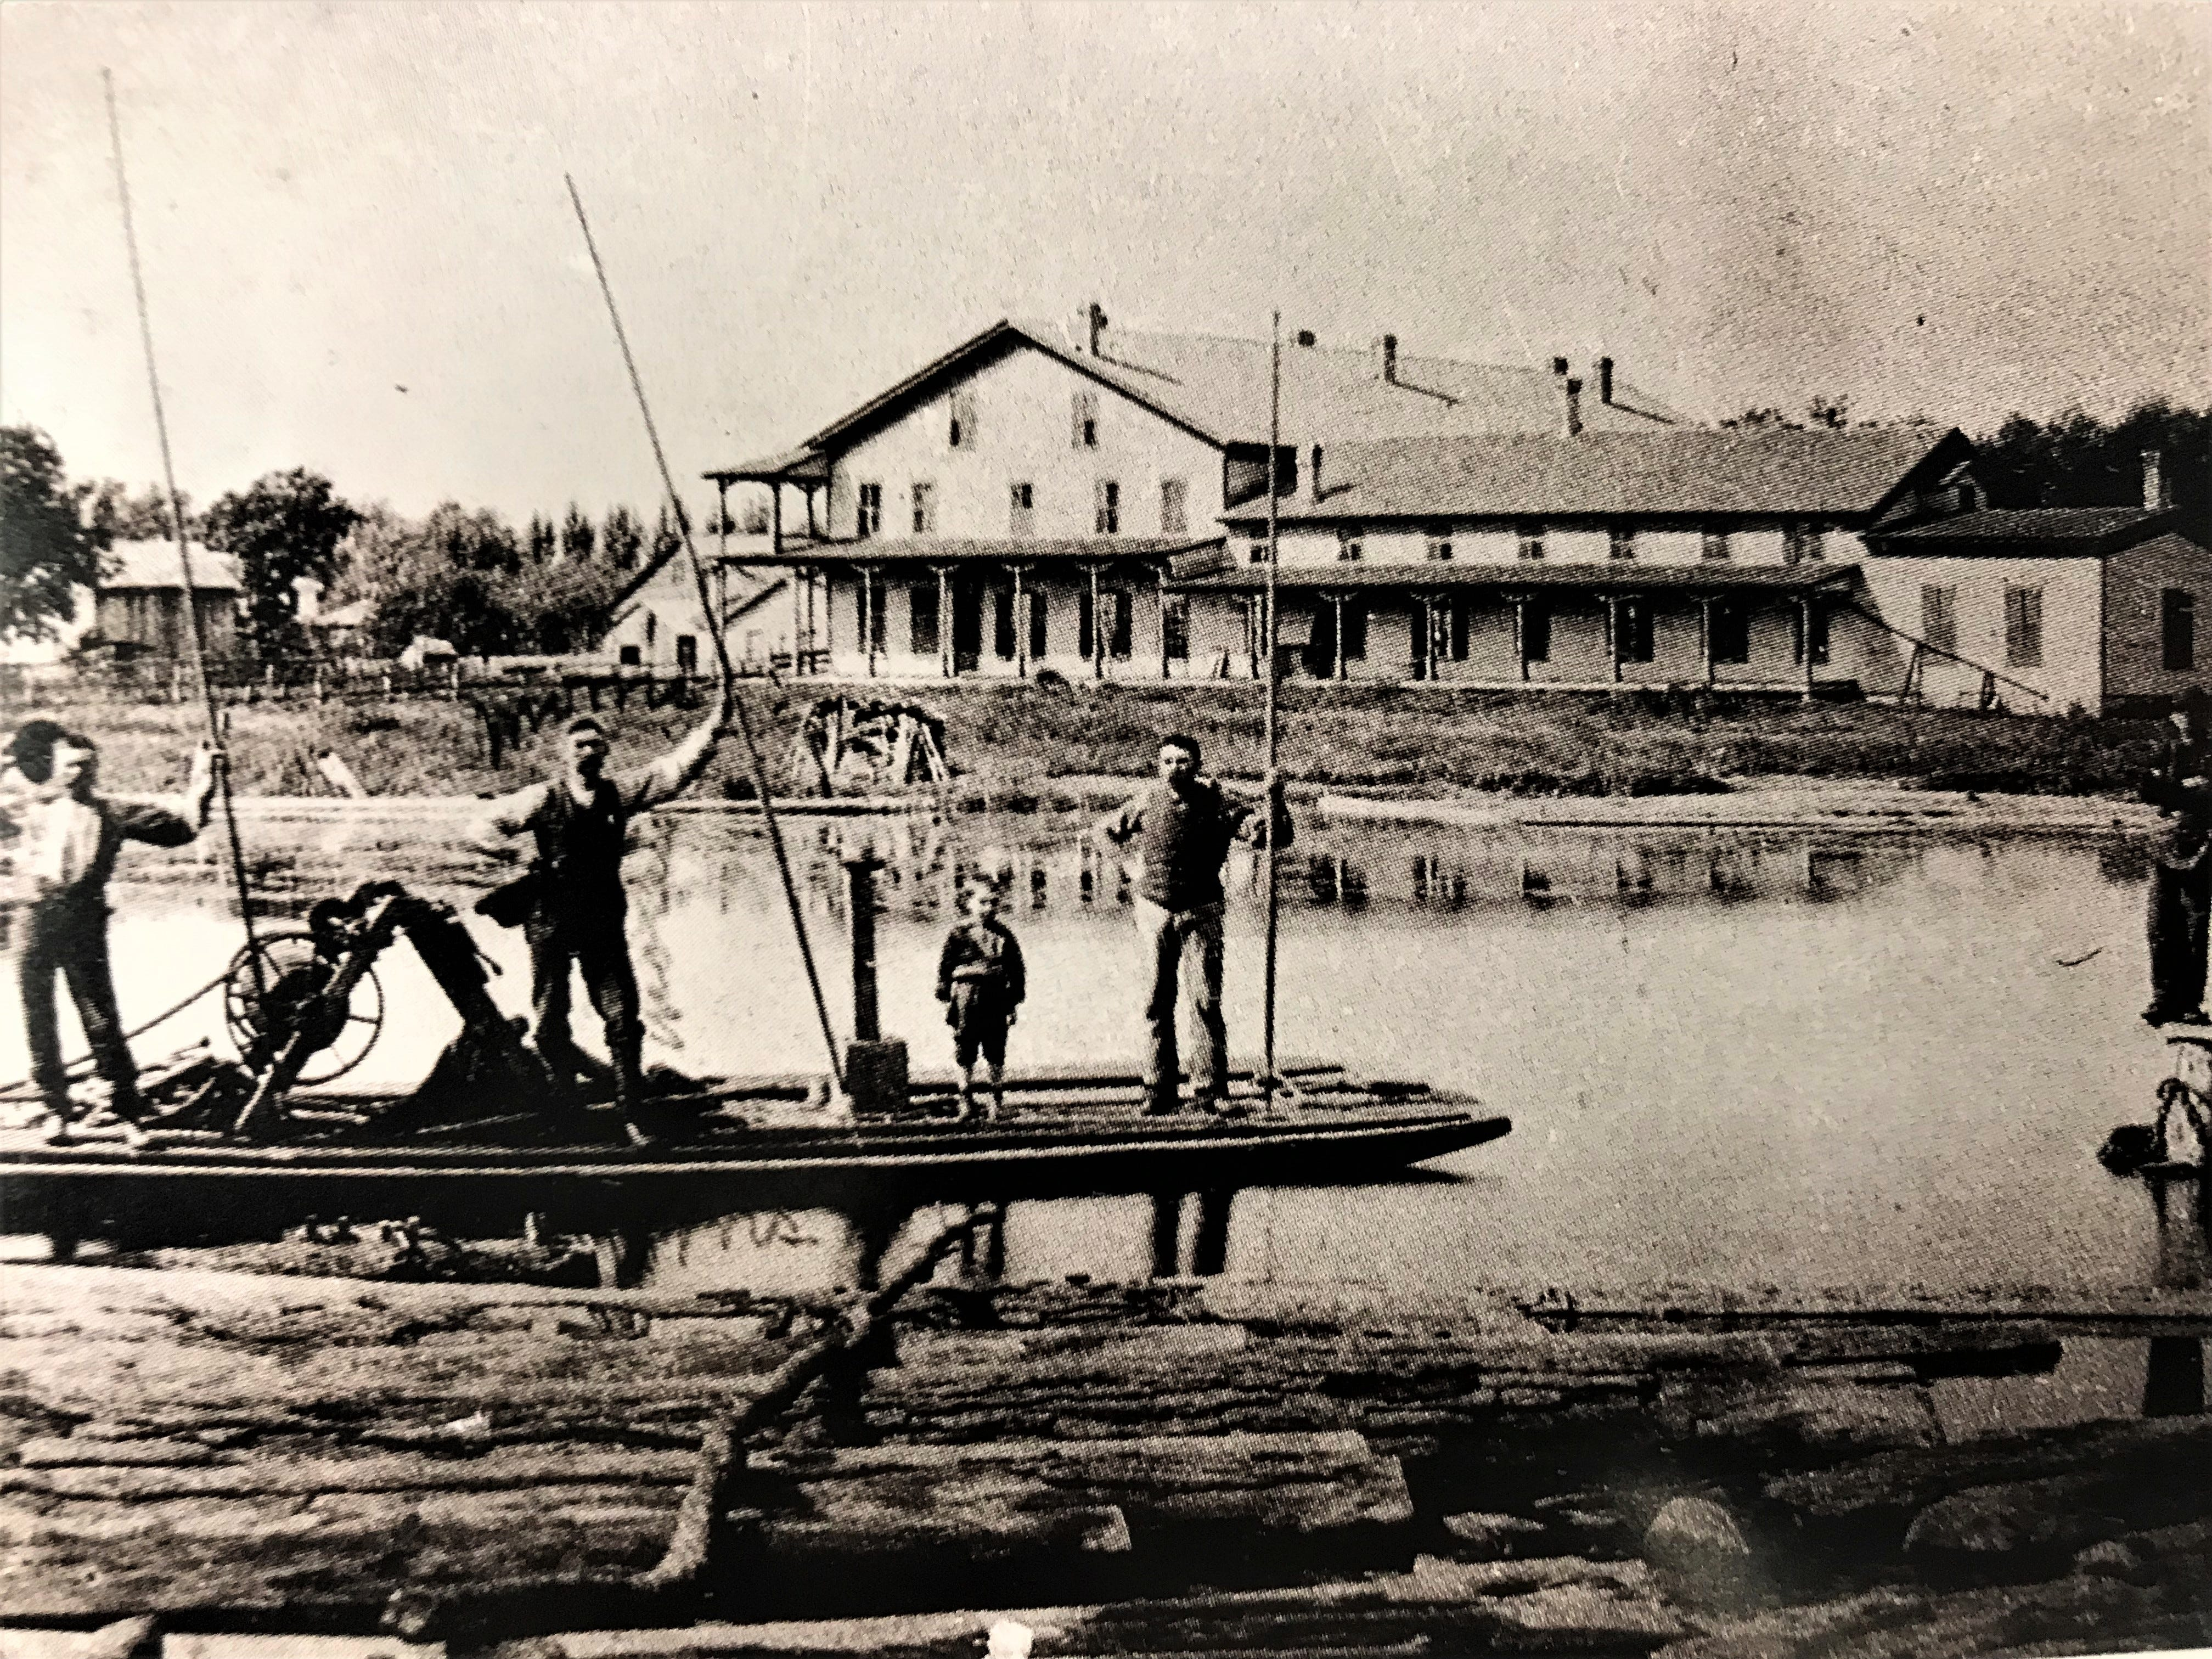 Lumberman from Moore and Galloway Mill sort logs along the bank of the Fond du Lac River, south of Scott Street. The Moore and Galloway Mill survived three fires, but by the end of  the first decade of the 1900s lumber mills had disappeared from the shores of Lake Winnebago and the Fond du Lac River.